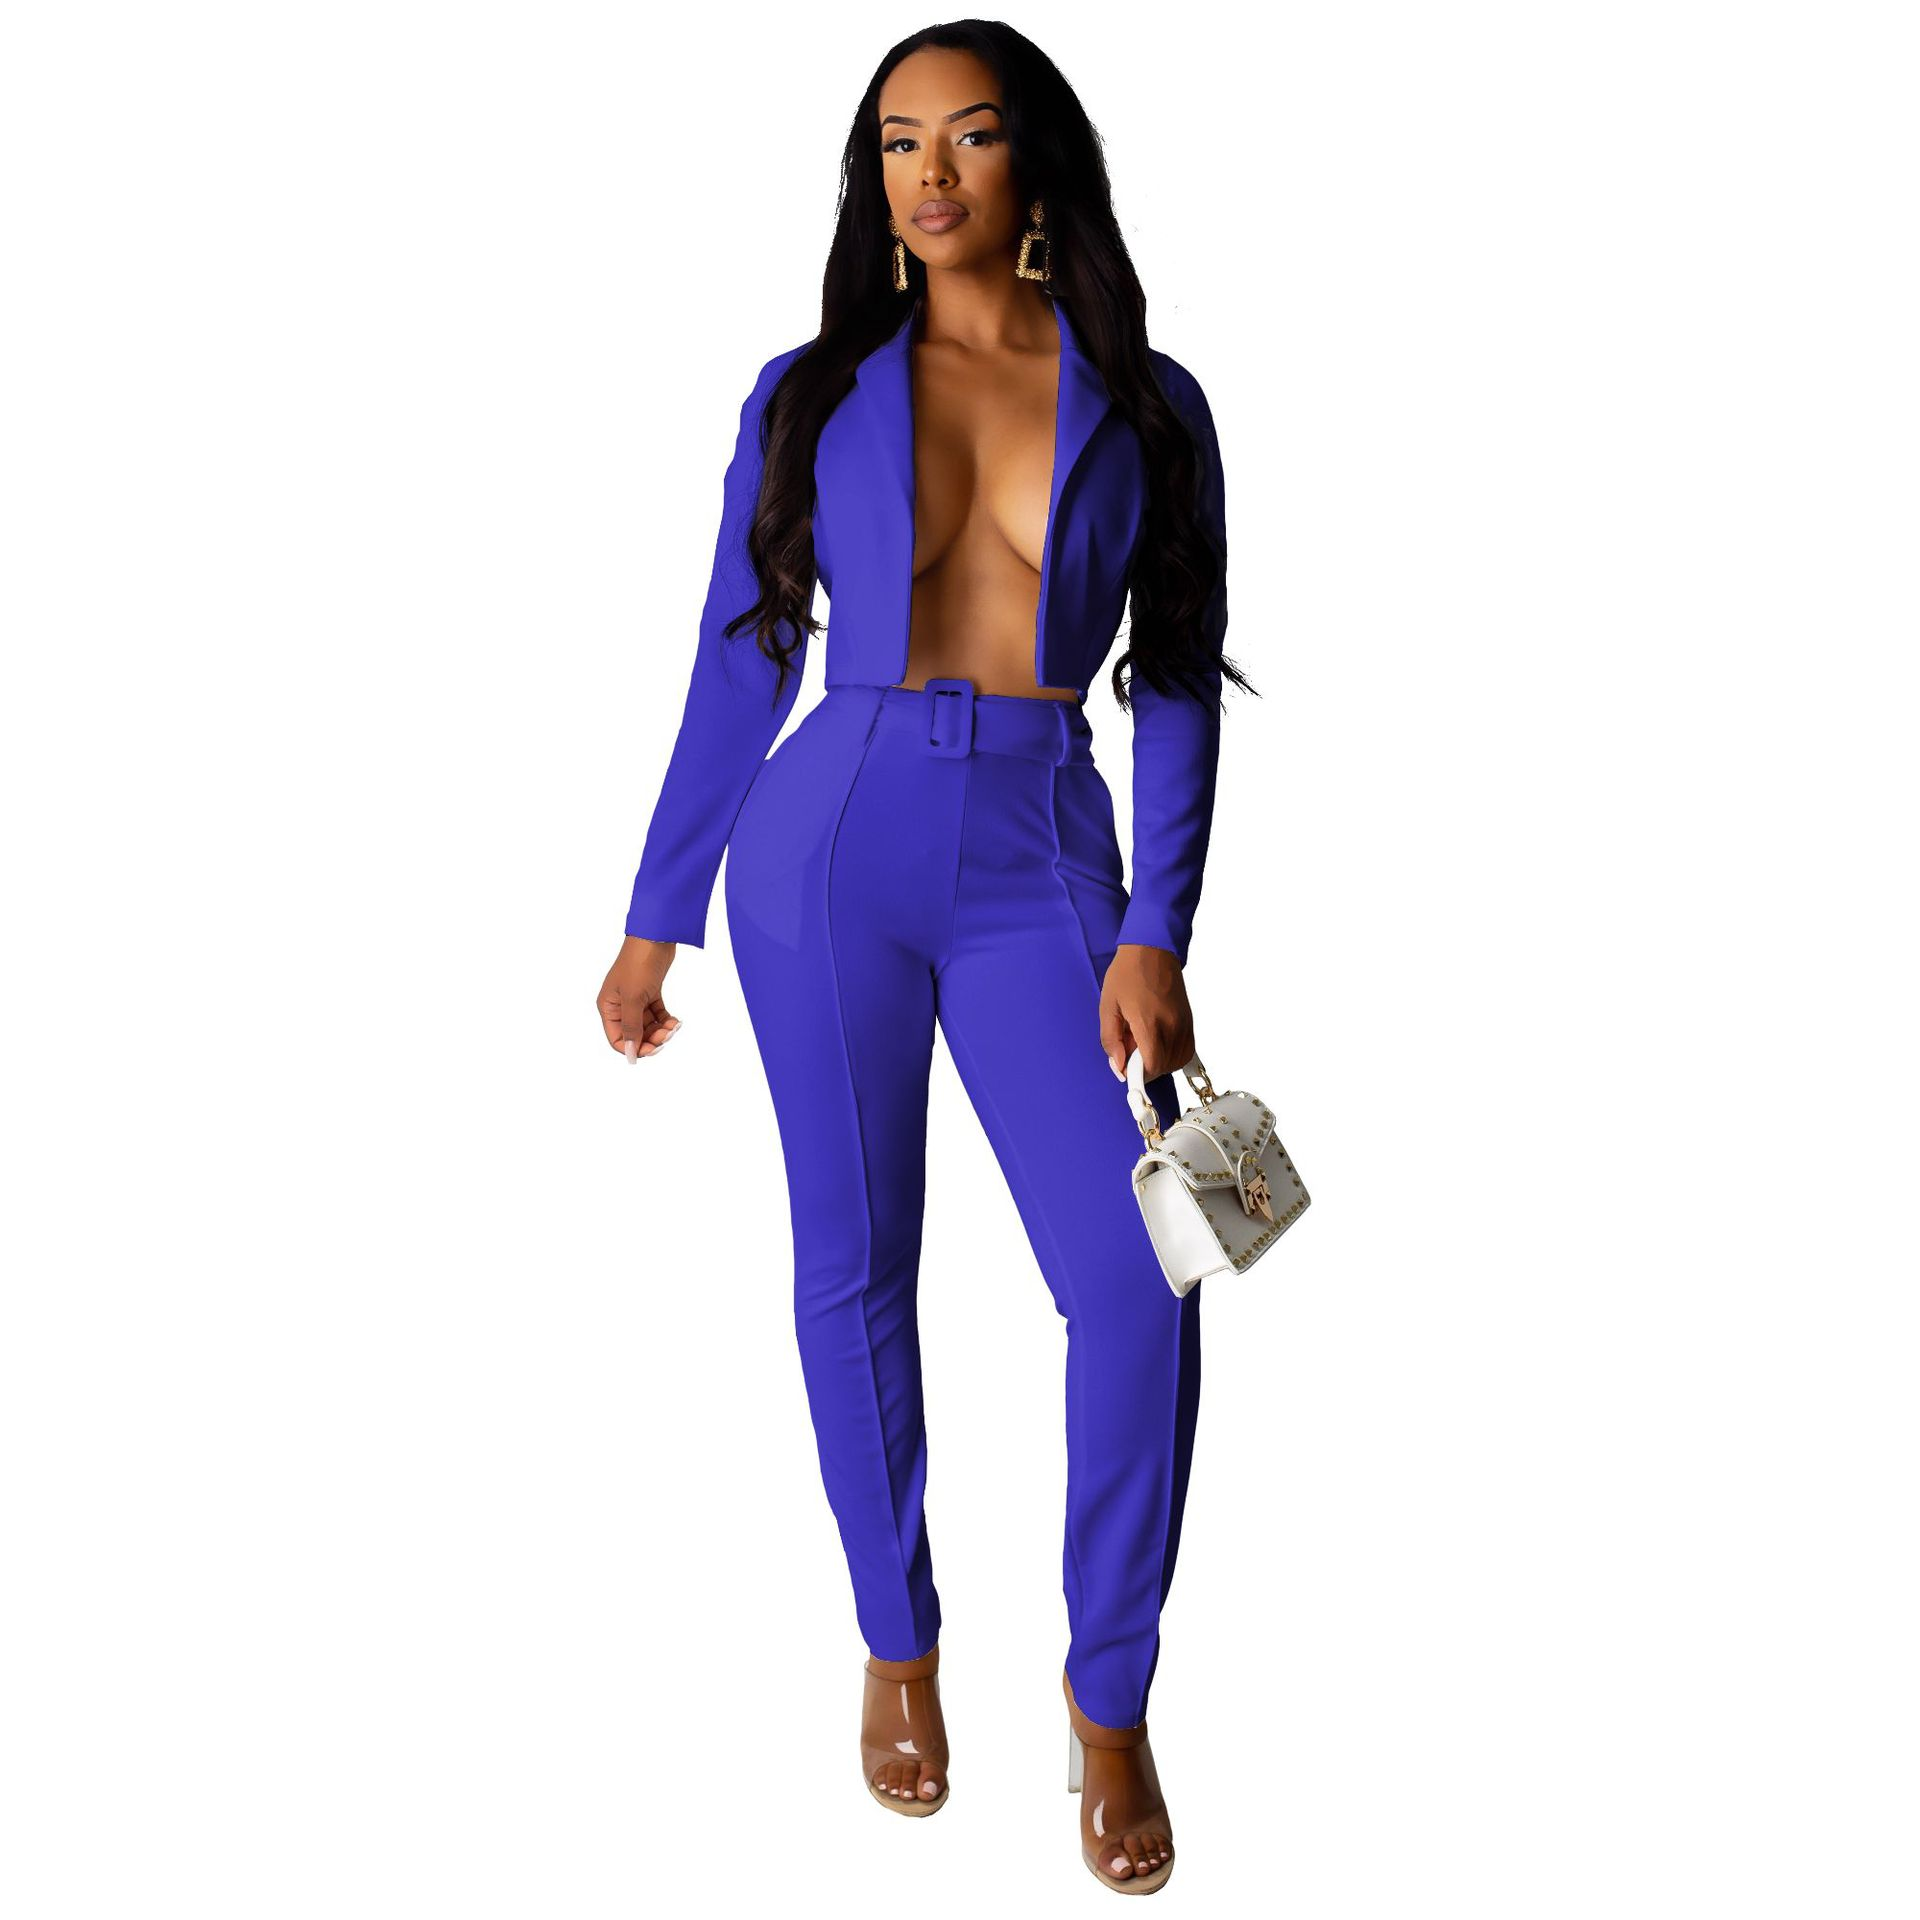 Women Sexy Notched Long Sleeve Elegant Office Lady Blazer And Trousers Pant Suits Matching Set Outfits F21